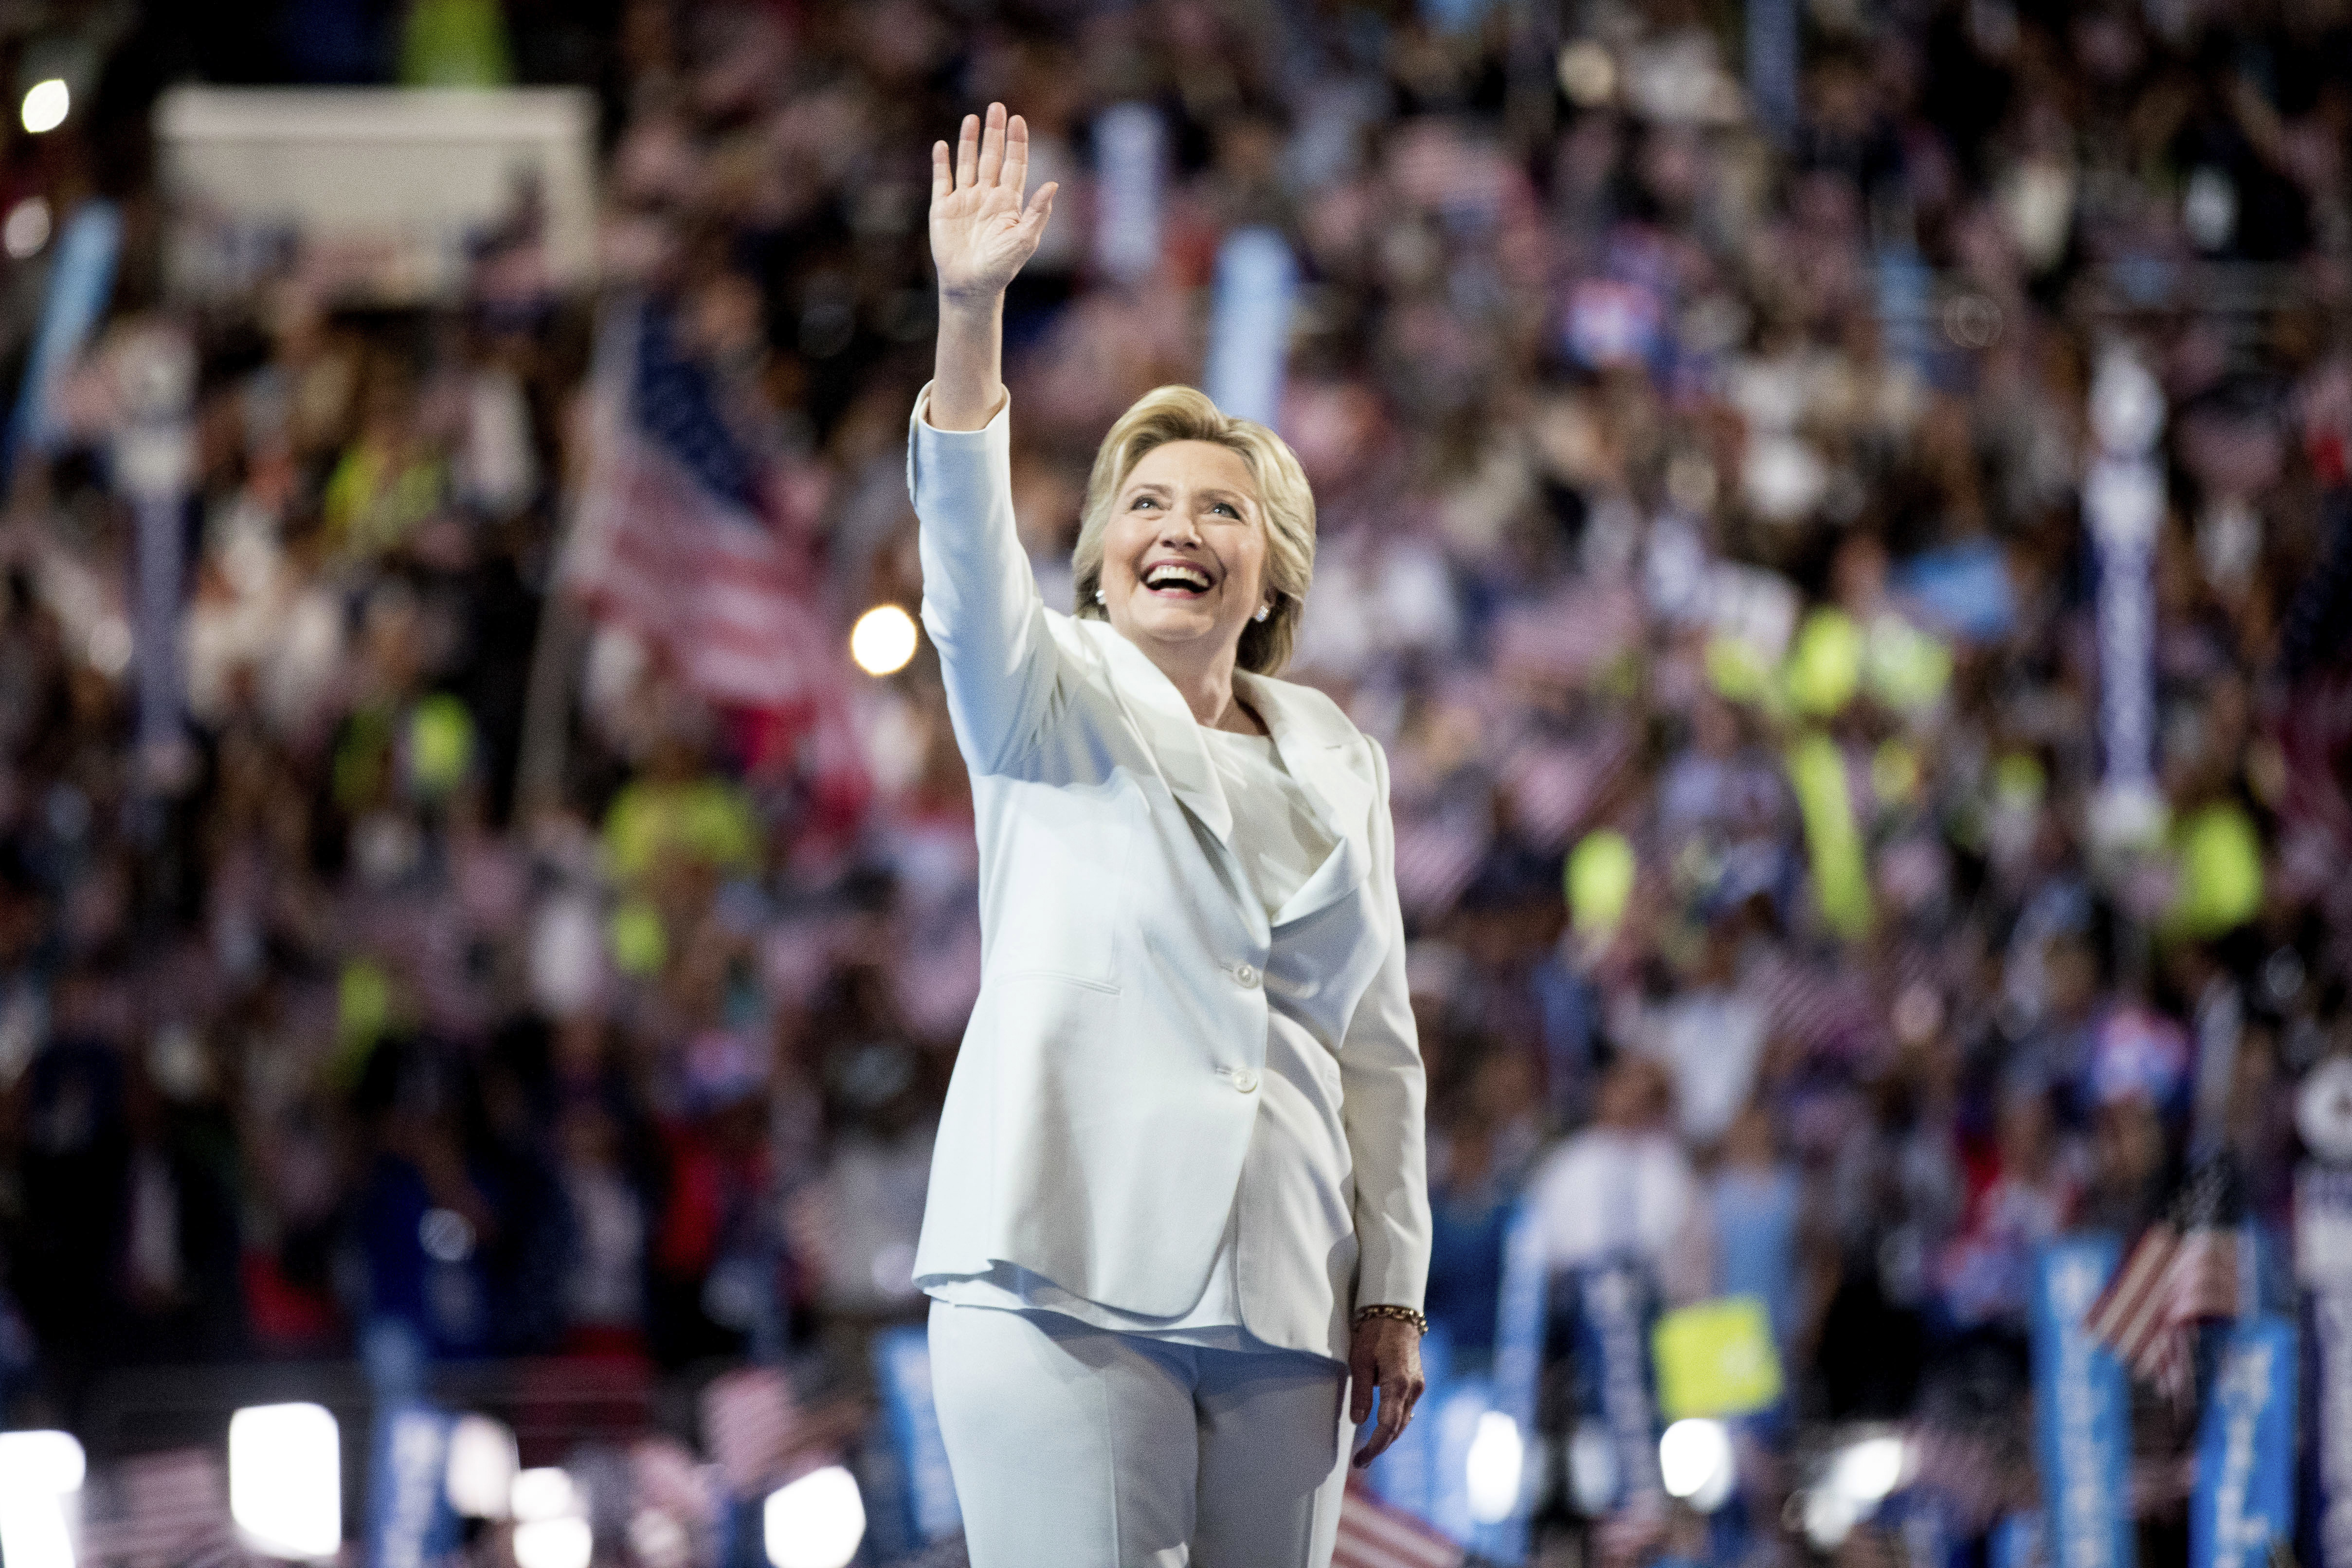 Democratic presidential candidate Hillary Clinton waves to the crowd as she takes the stage to speak during the fourth day session of the Democratic National Convention in Philadelphia on July 28, 2016.